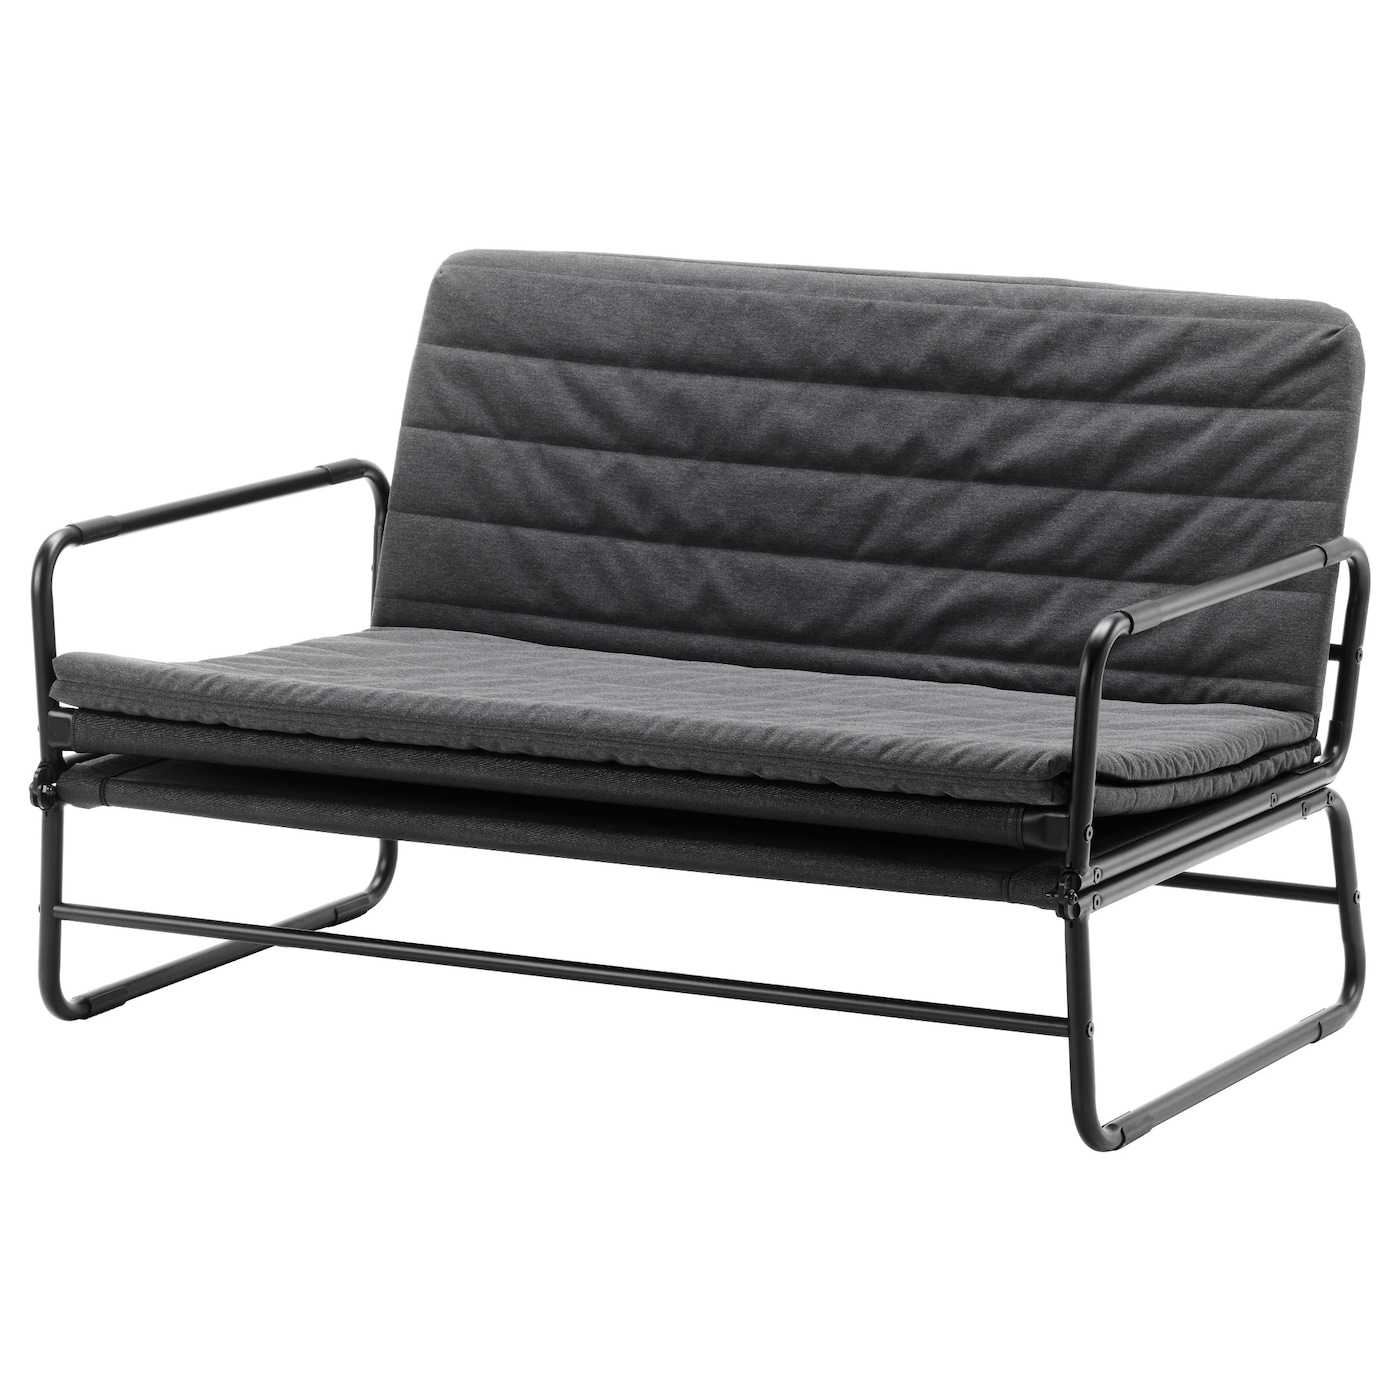 Hammarn Sofa Bed Knisa Dark Grey Black 120 Cm Ikea